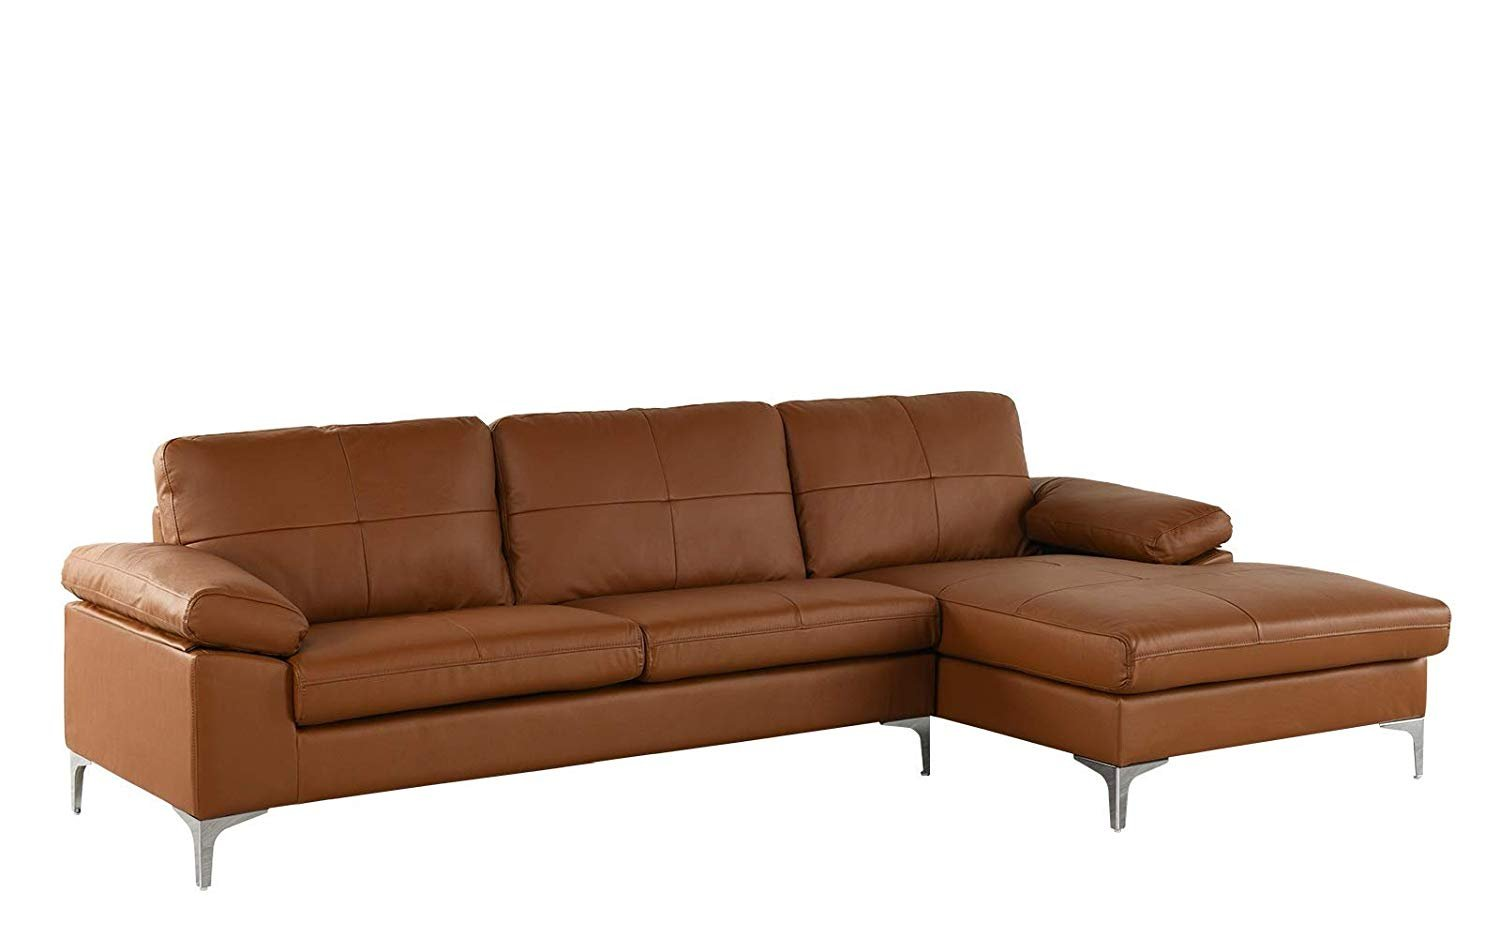 Sofa On Sale Ebay Camel Large Leather Sectional Sofa L Shape Couch With Chaise 108 7